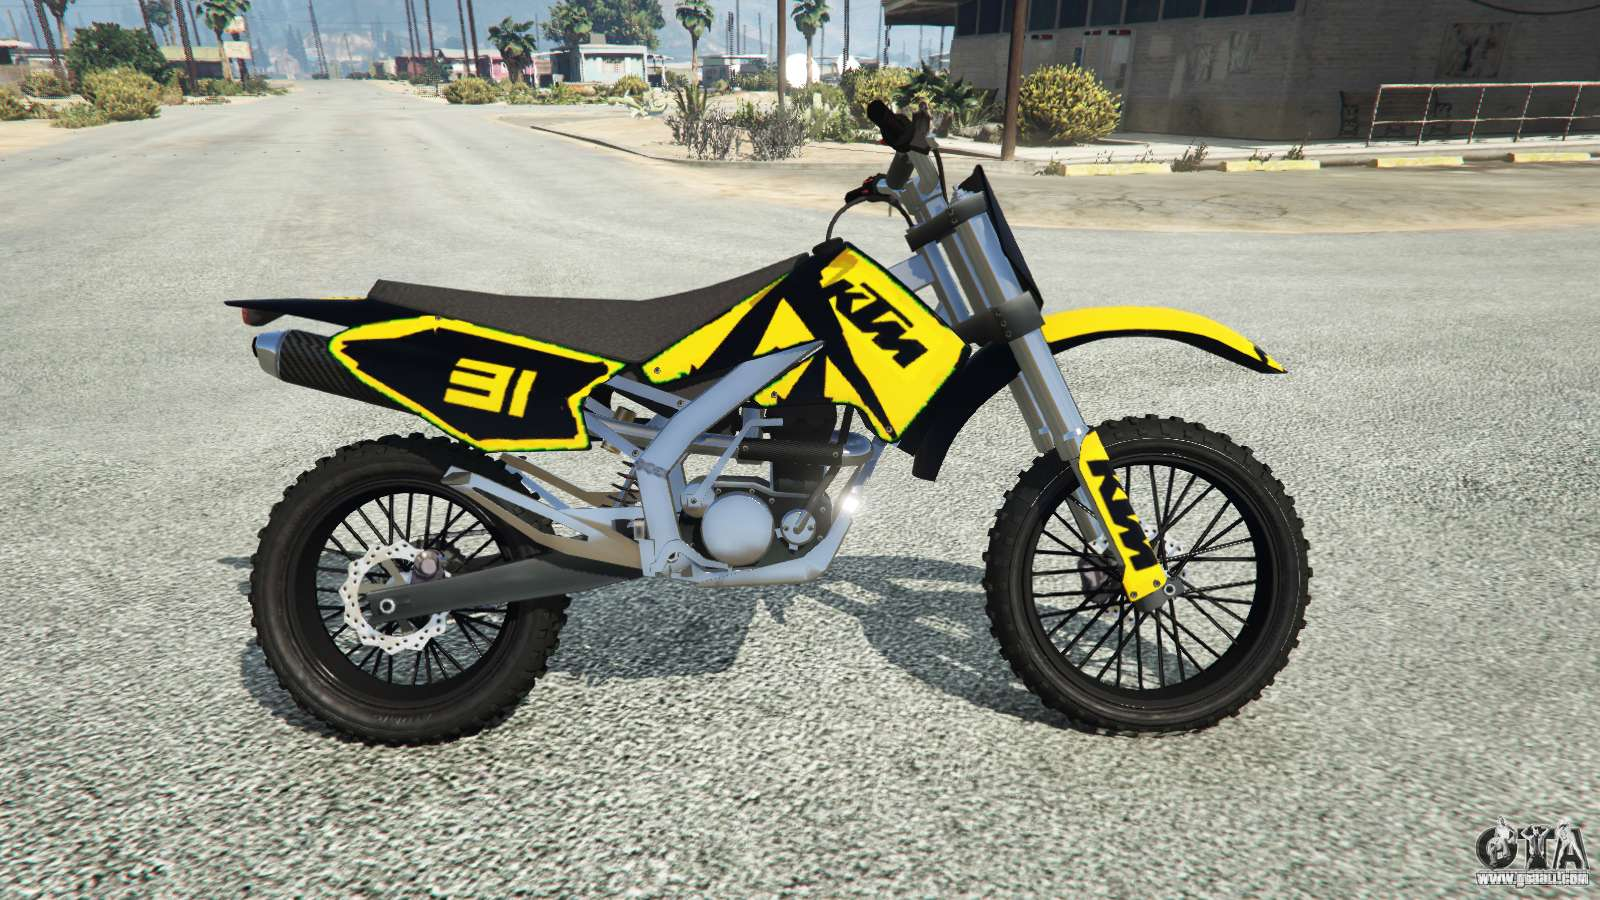 GTA 5 motorcycles - download motorbikes for GTA V